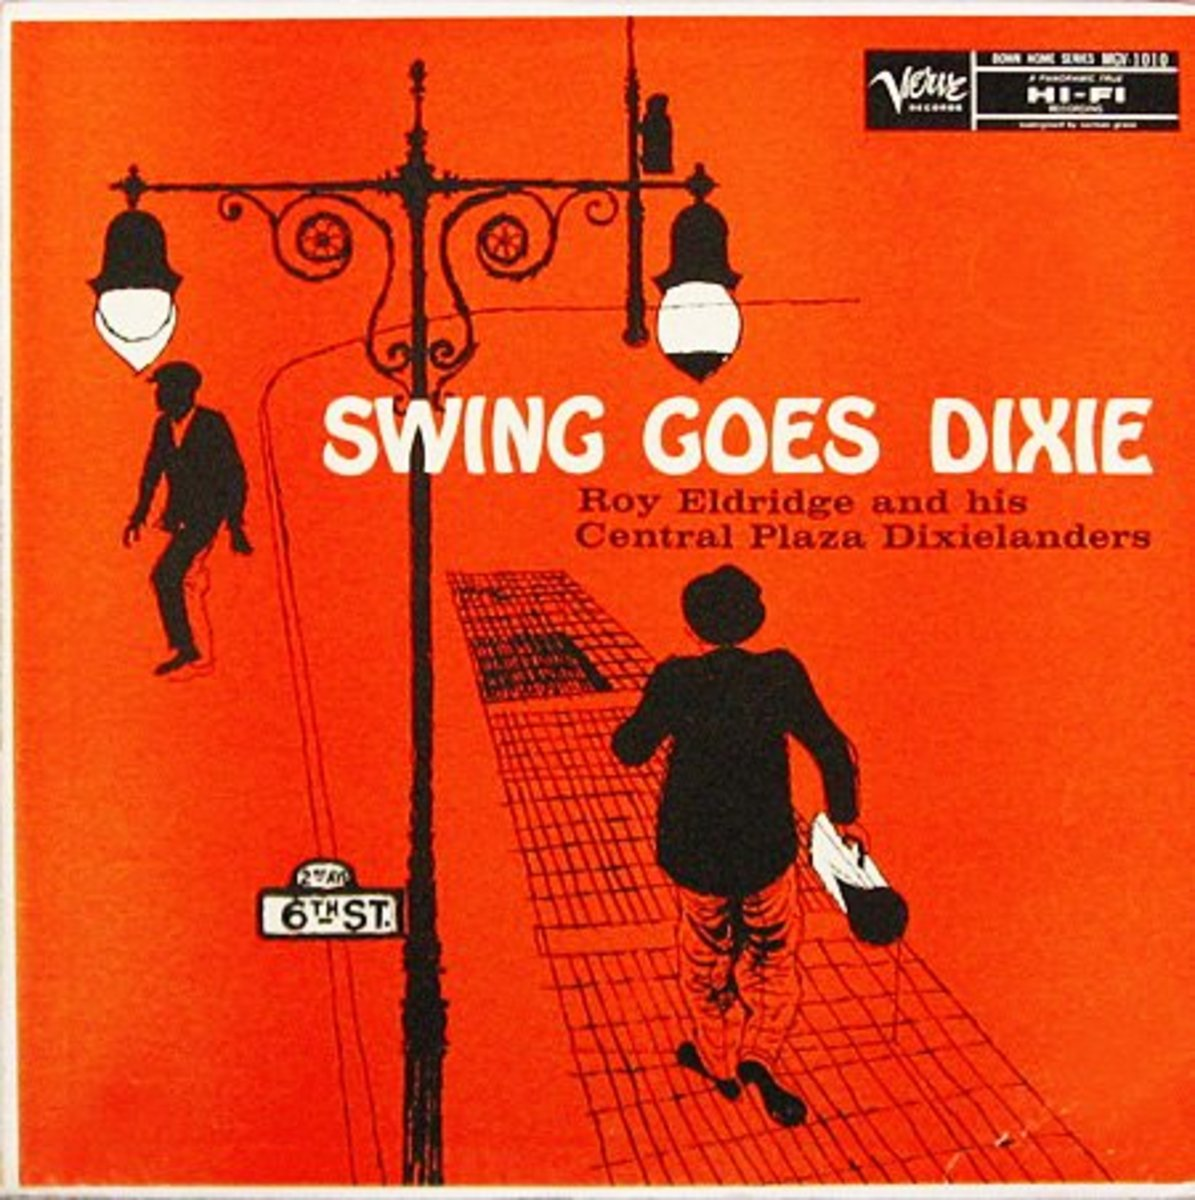 "Roy Eldridge ""Swing Goes Dixie"" Verve Records 1010 12"" LP Vinyl Record (1956) Album Cover Art by David Stone Martin"